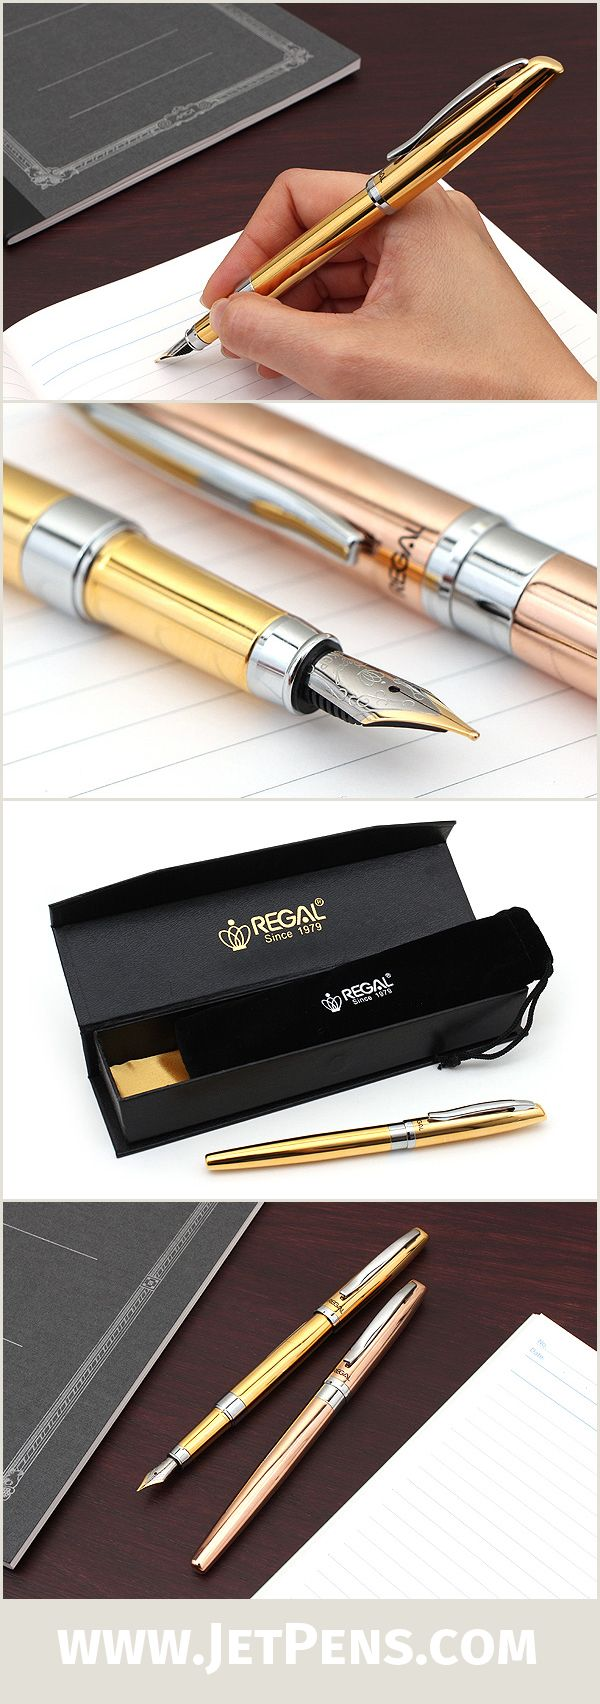 The Regal Hemingway Fountain Pen is a writing instrument with bold, memorable style due to its metallic finish and gold-plated nib.